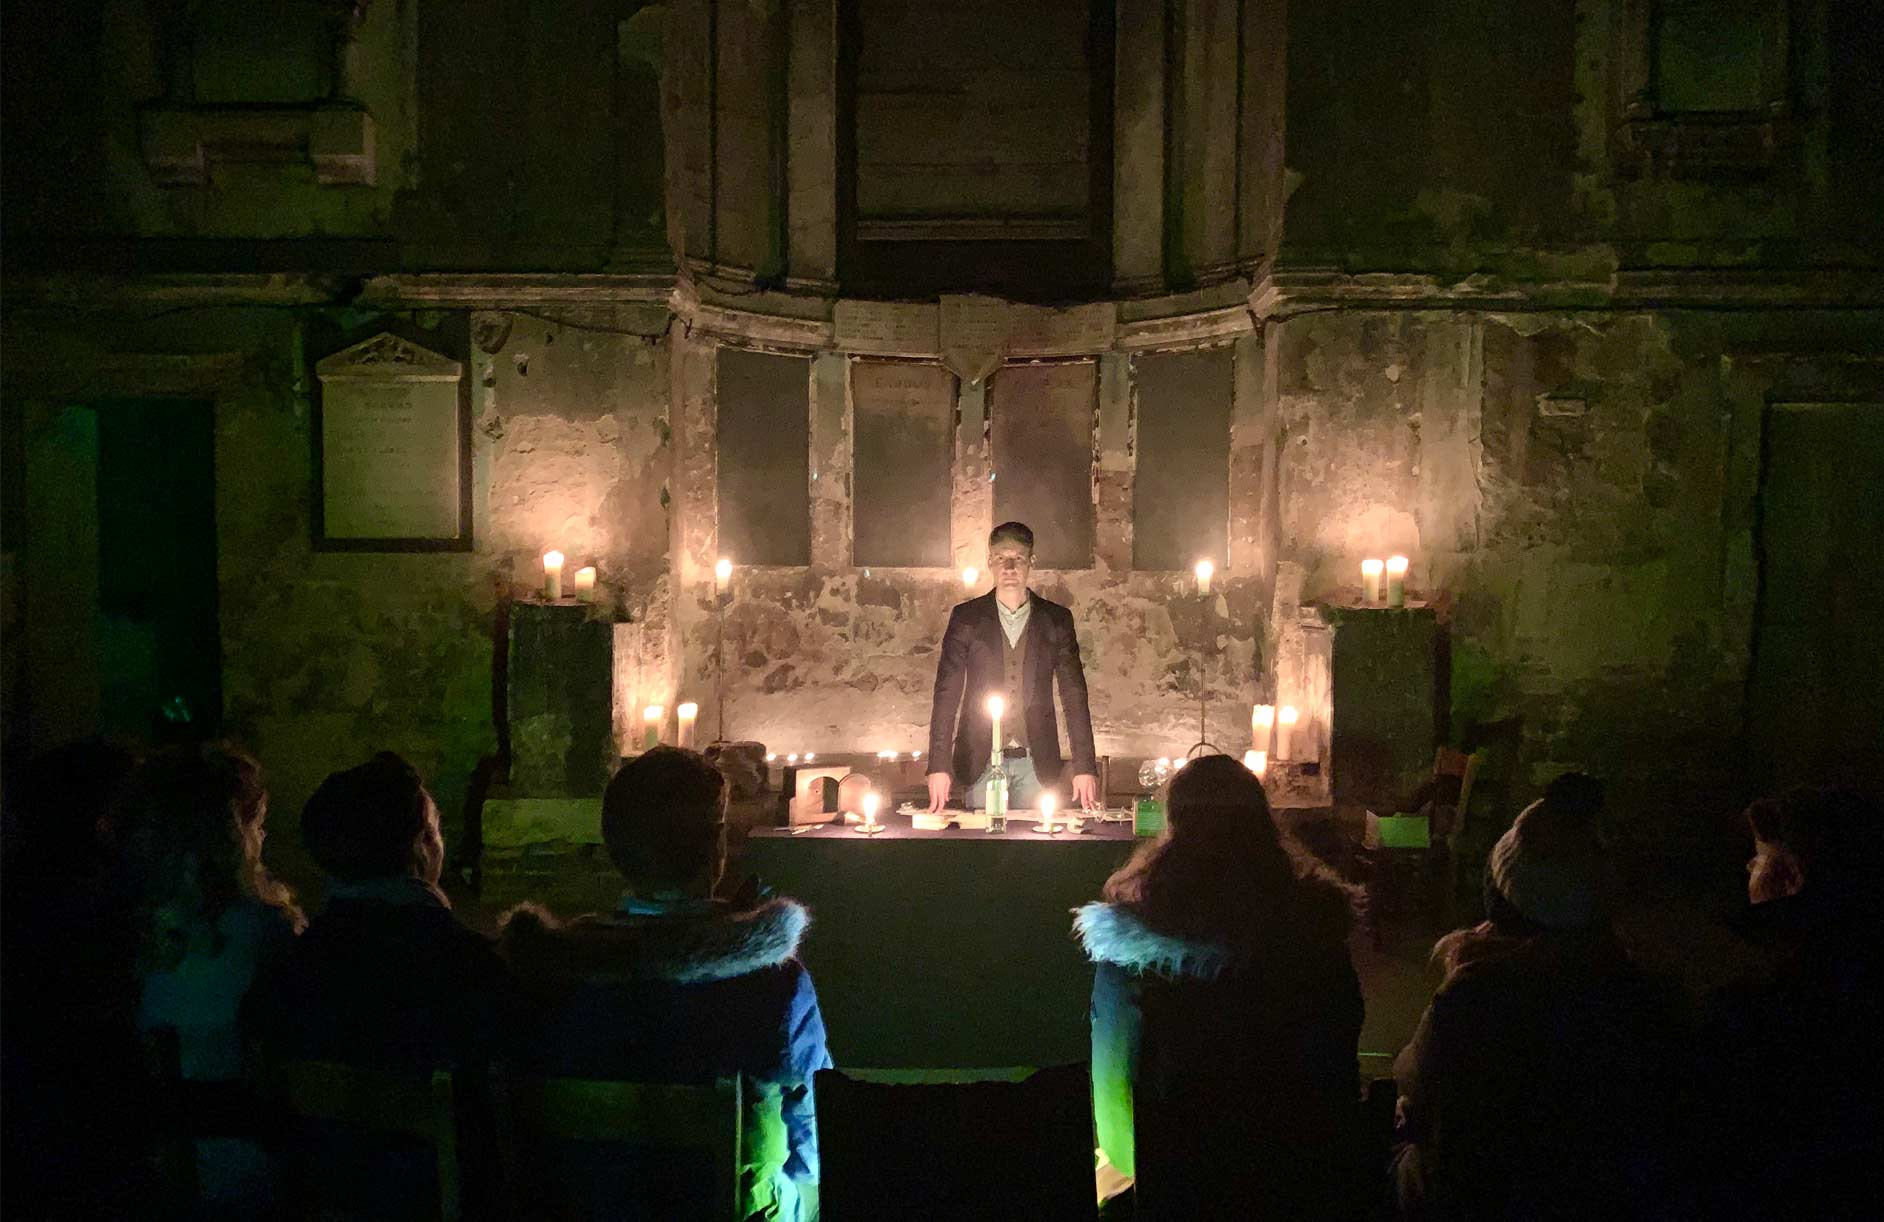 Christopher Howell stands in a derelict church at a table in candlelight